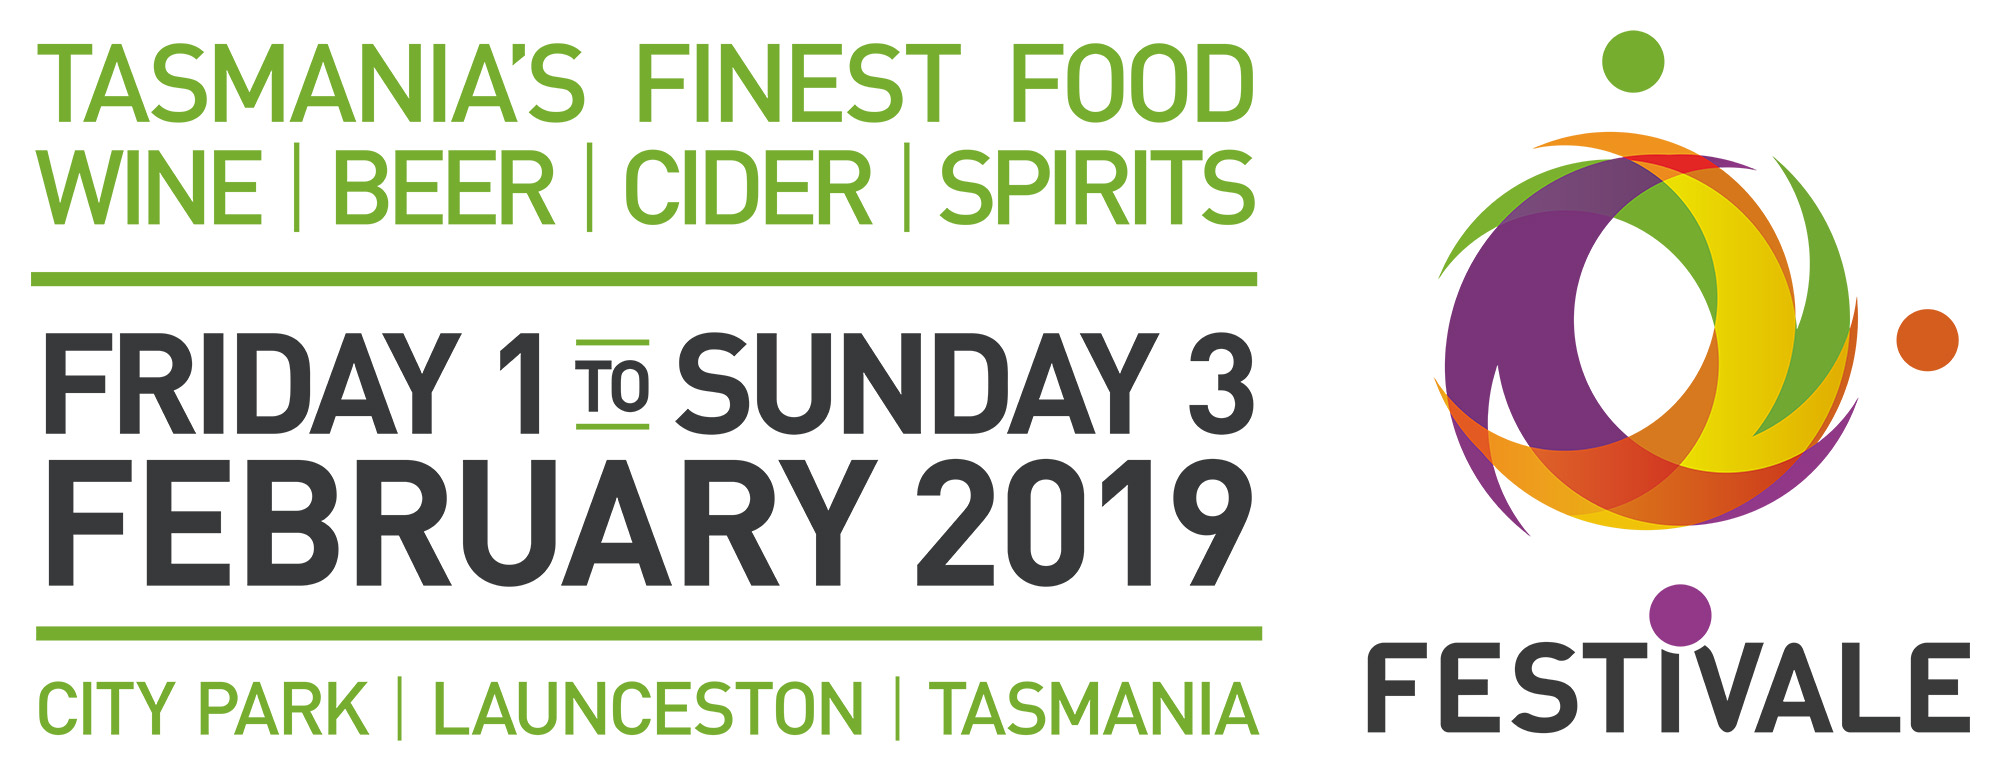 Tickets for Festivale 2019 in Launceston from Ticketbooth